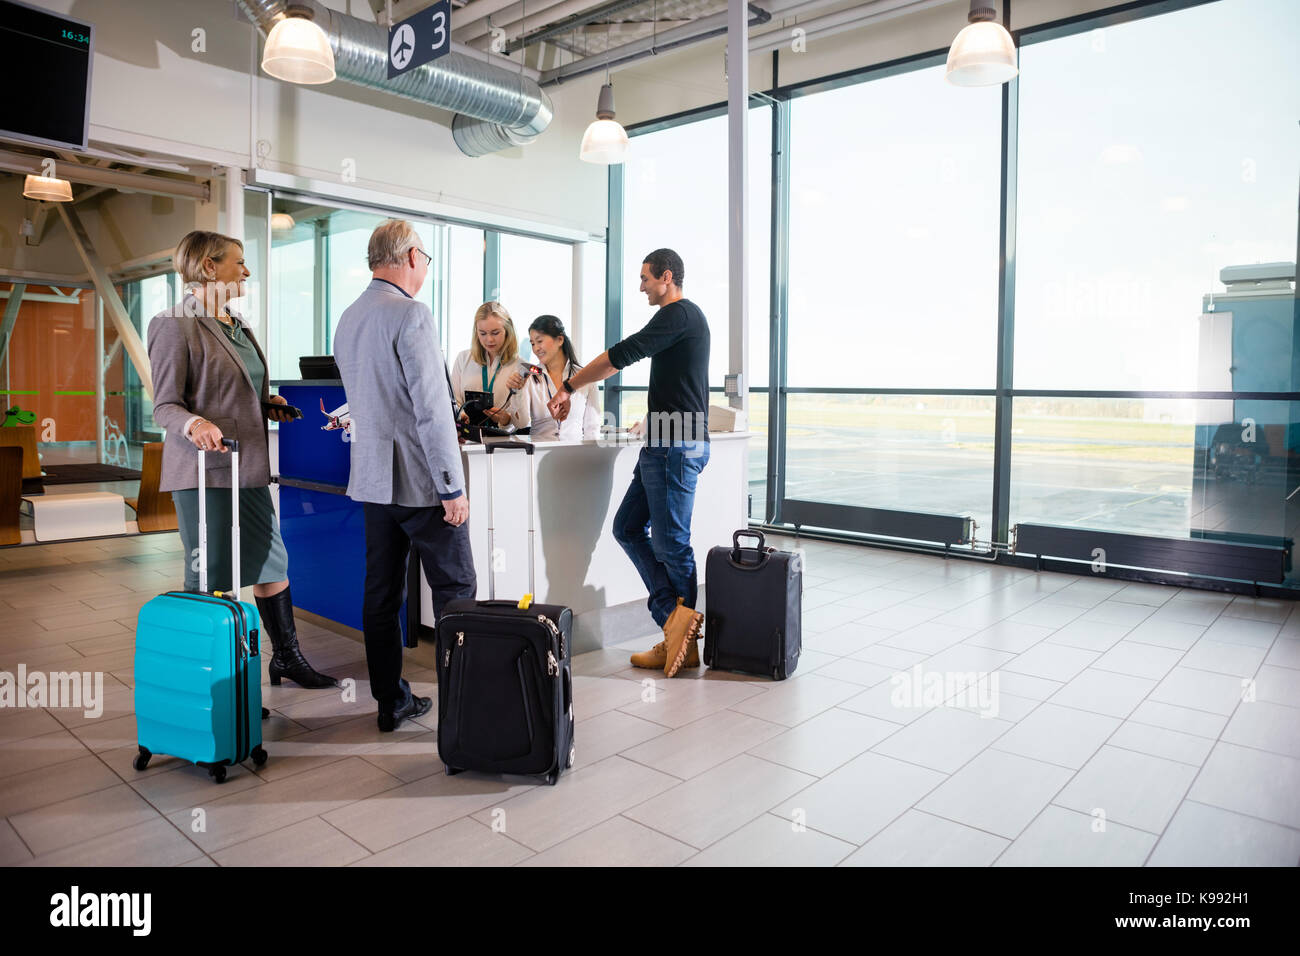 Passengers With Luggage Standing While Receptionists Working At  - Stock Image